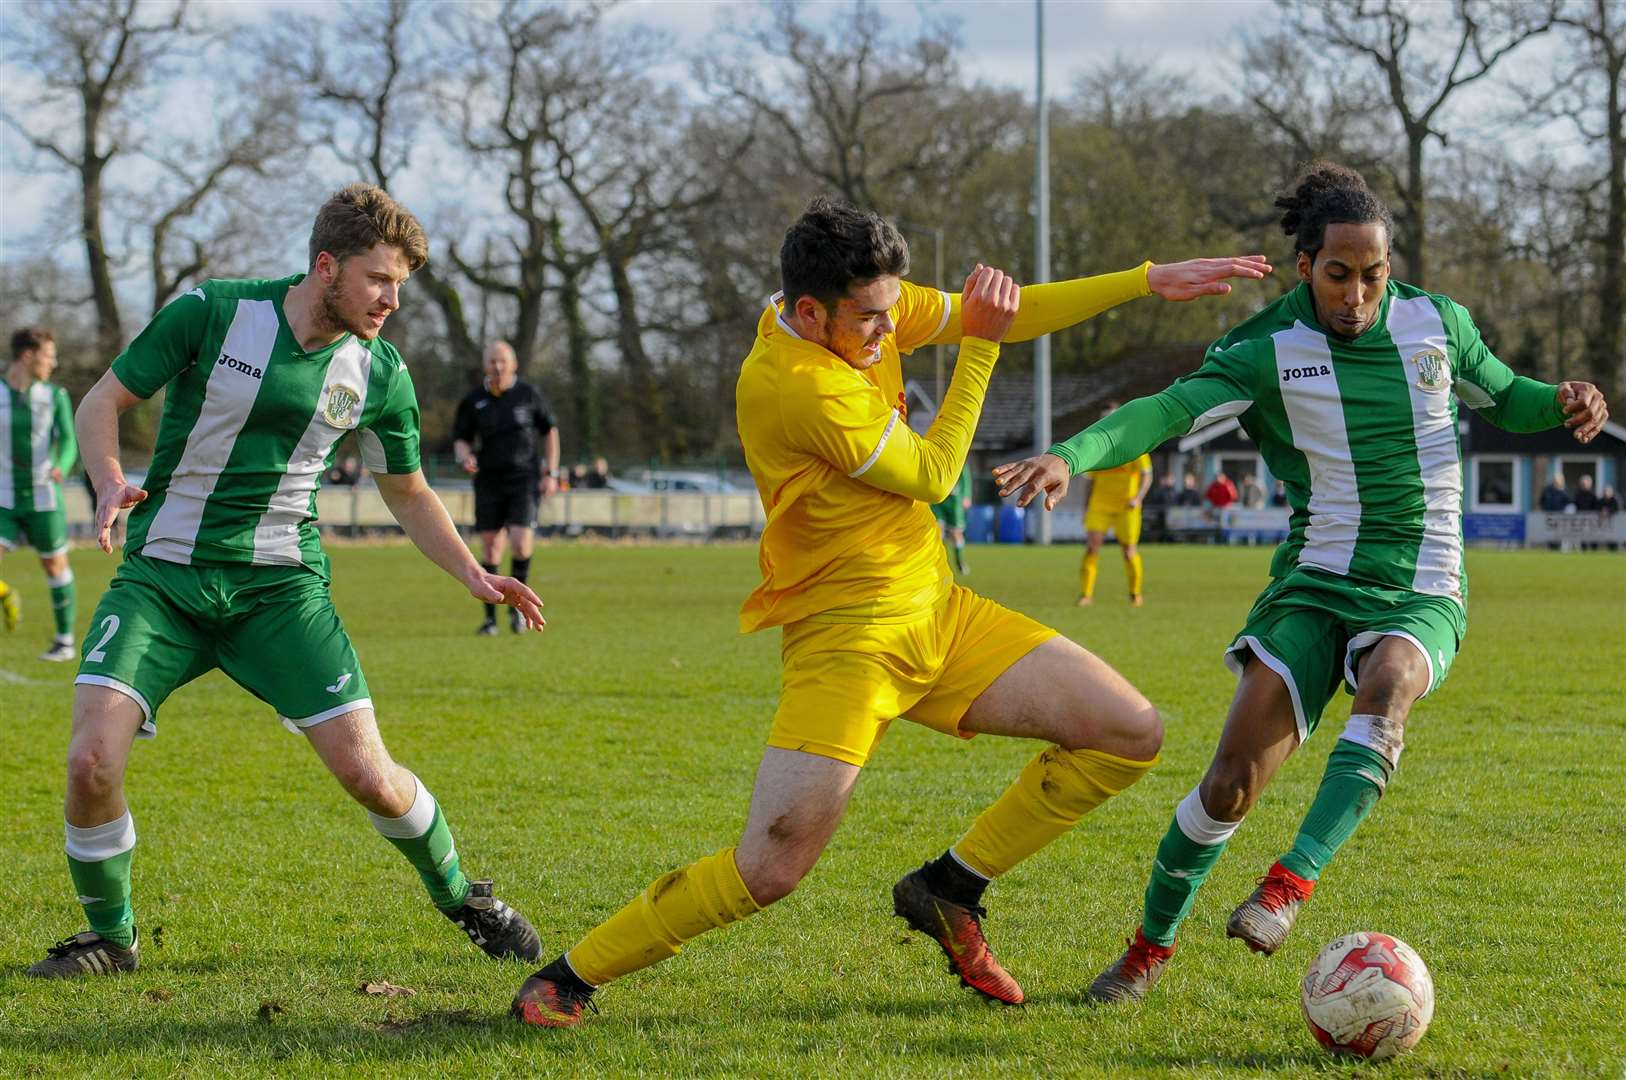 Action from Saturday's Thurlow Nunn League Premier Division clash between Walsham-le-Willows and Whitton United. The Thurlow Nunn League has leagues at Steps 5 and 6.